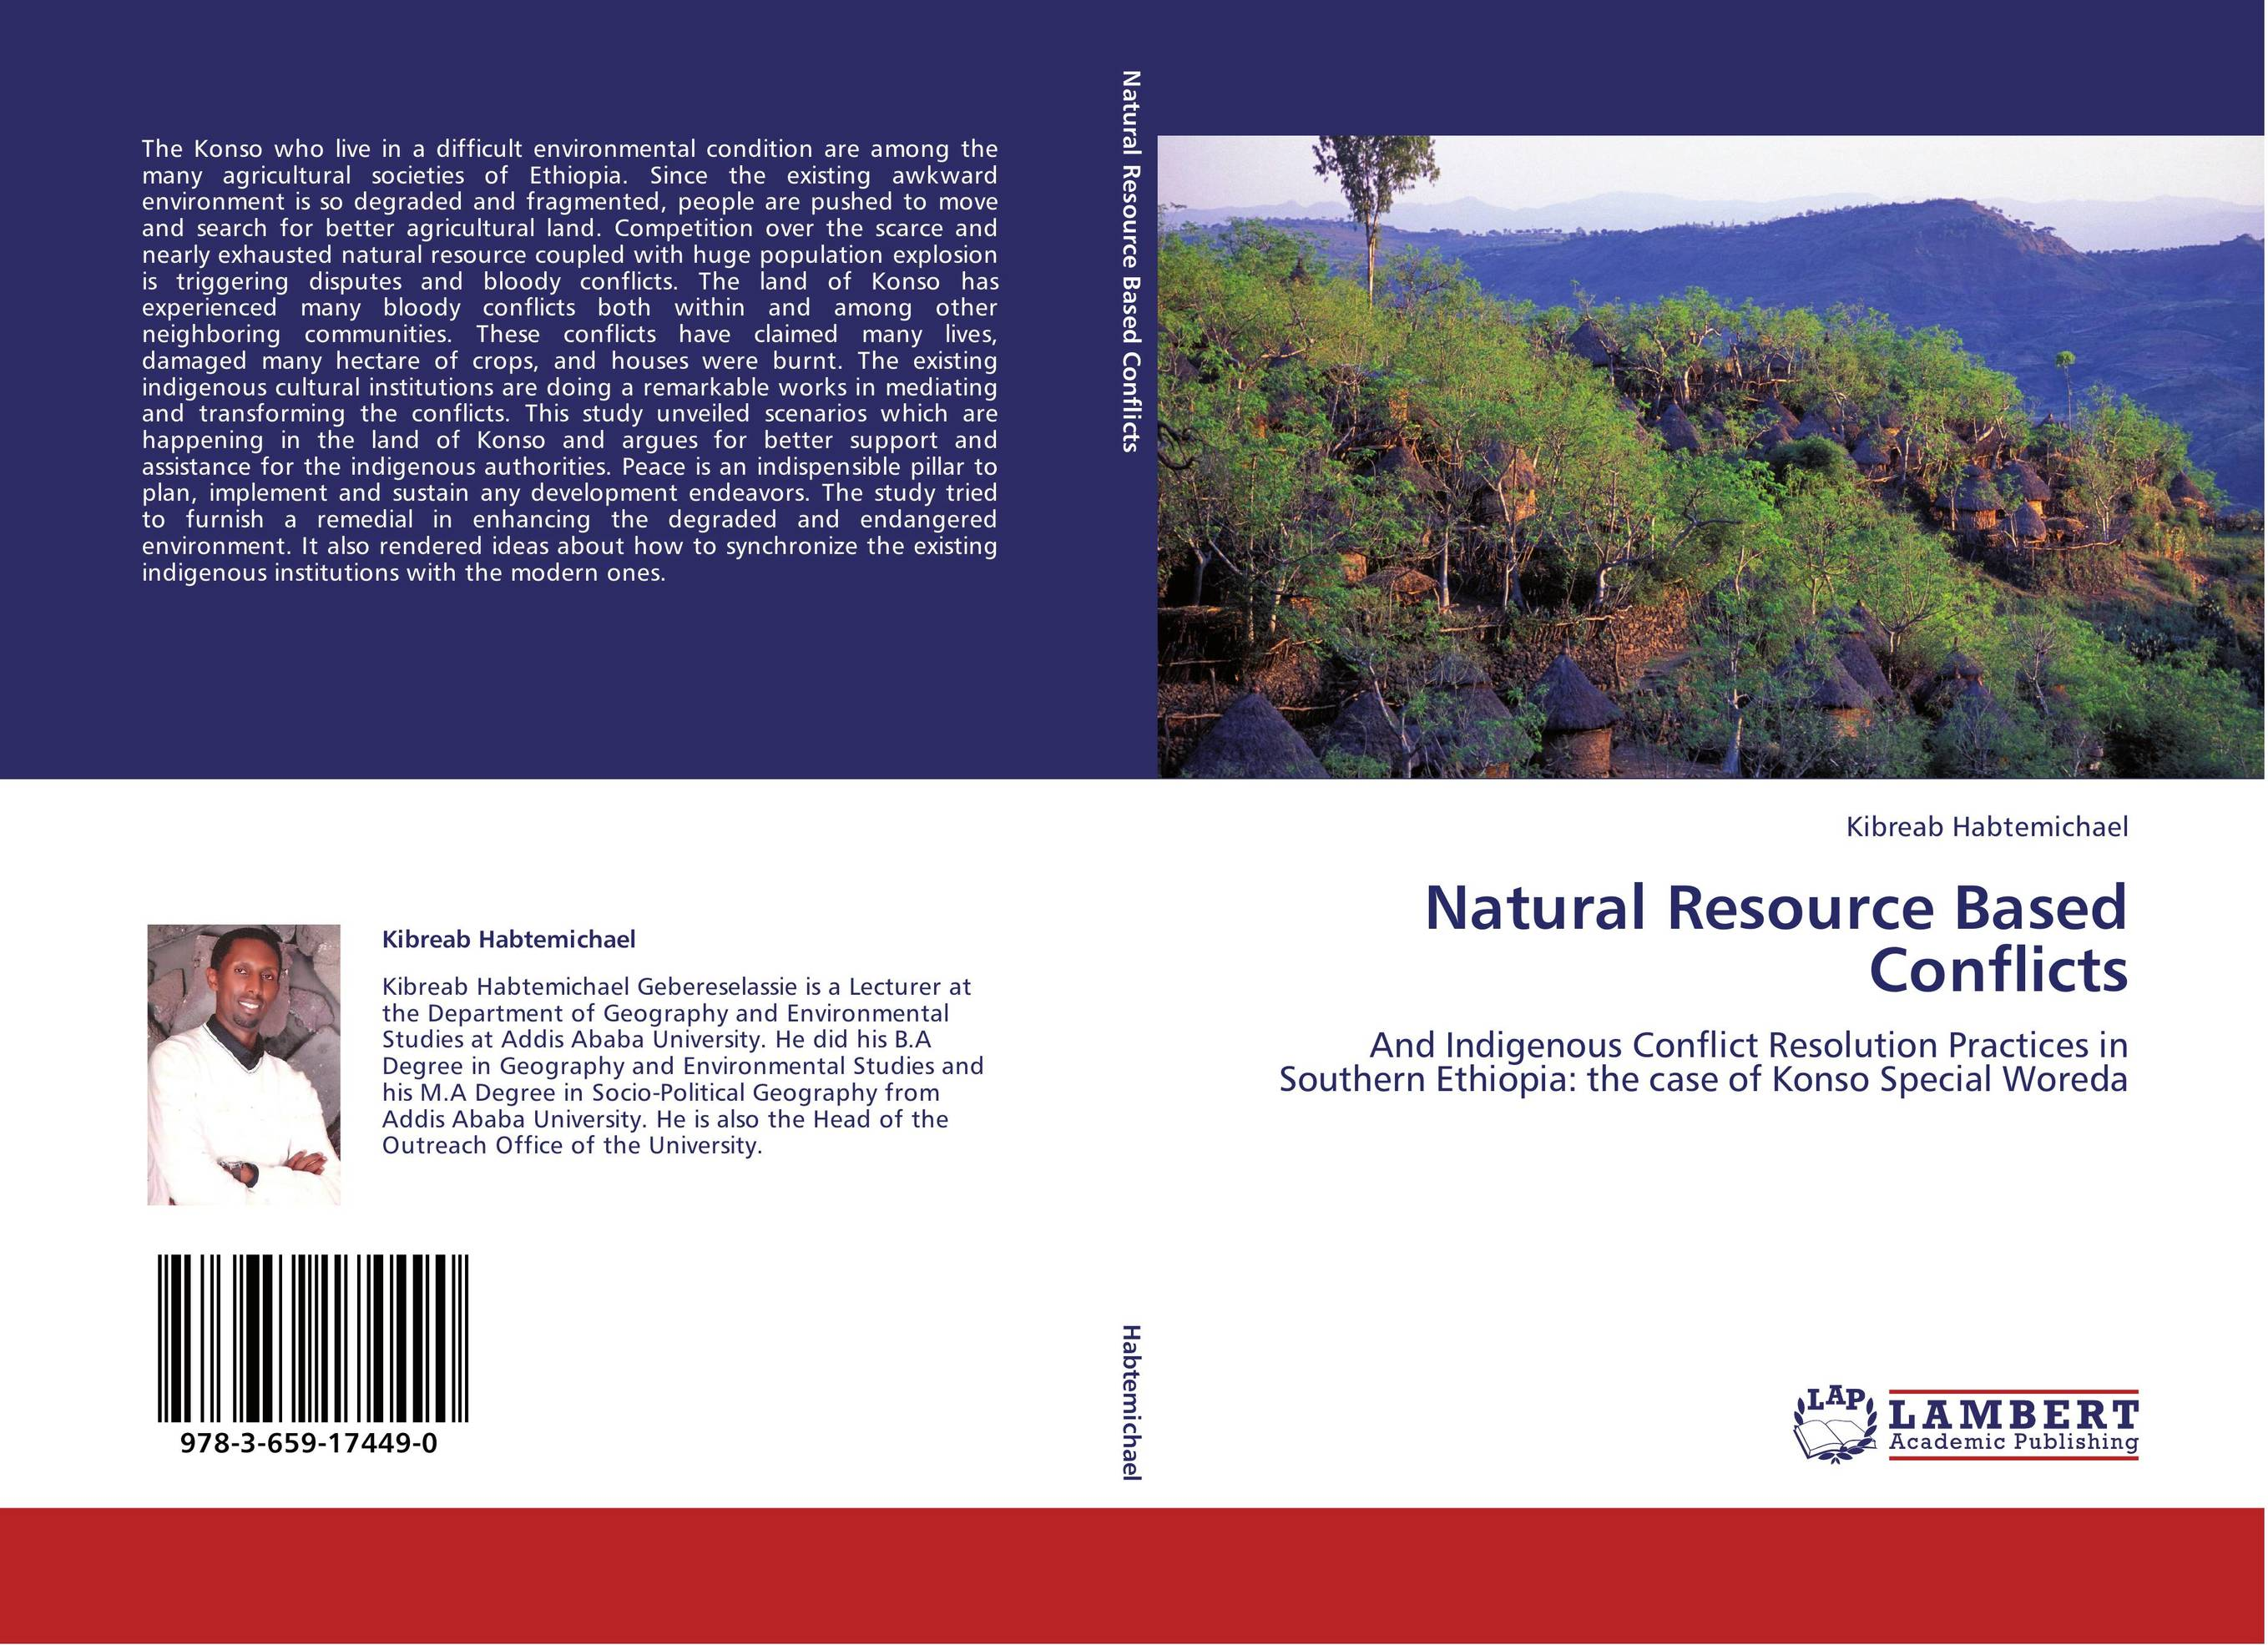 social natural resource conflicts Addressing natural resource conflicts: working towards more effective resolution of national and sub-national resource disputes 19 june 2015 the international community should approach intervention in national and sub-national resource disputes with caution, and its primary role should be to support the ability of countries to resolve their own.